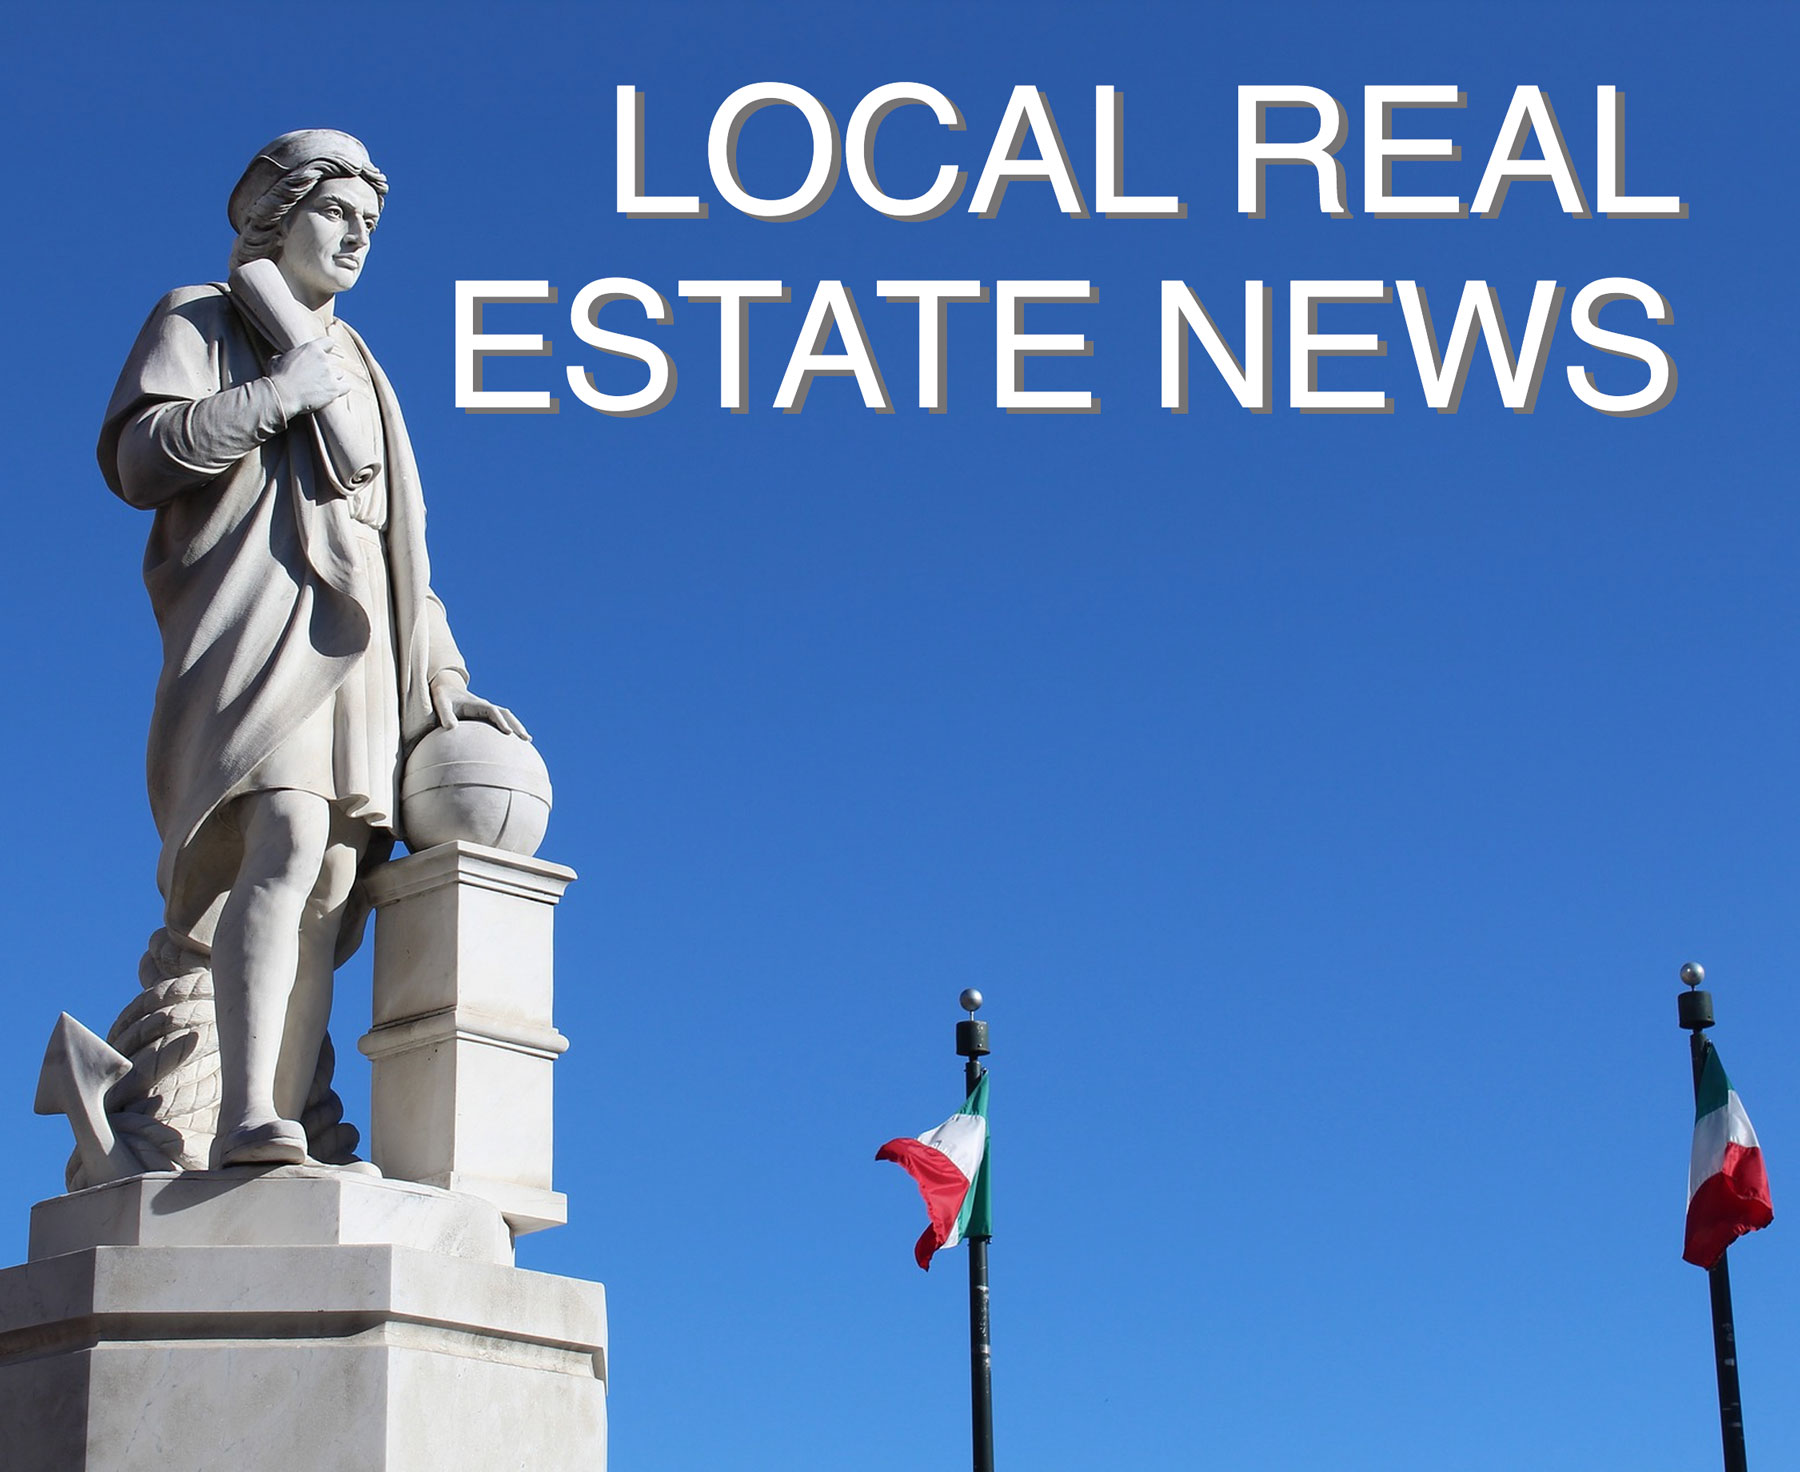 local real estate news